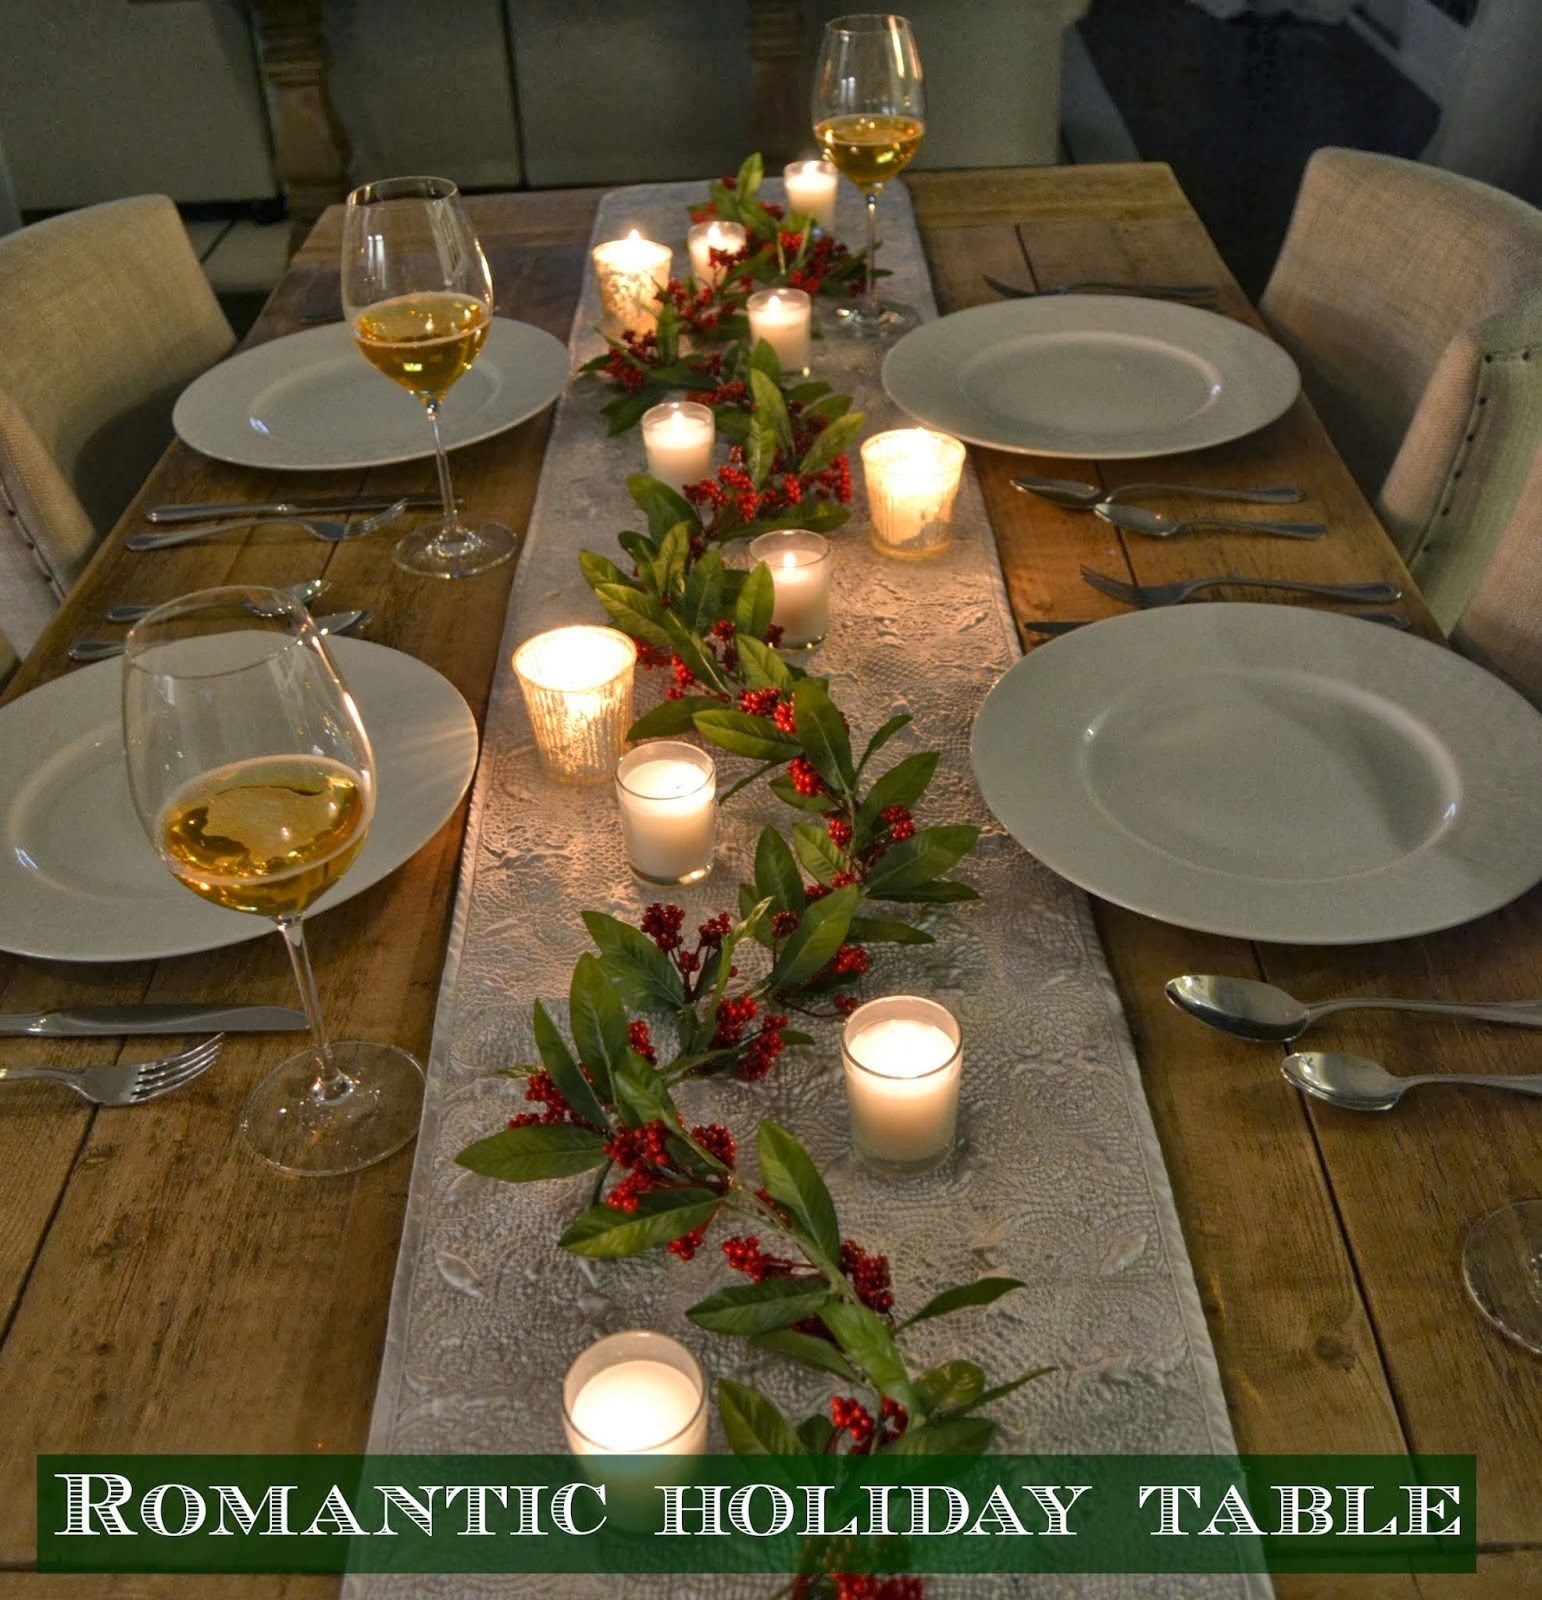 A Romantic Holiday Table